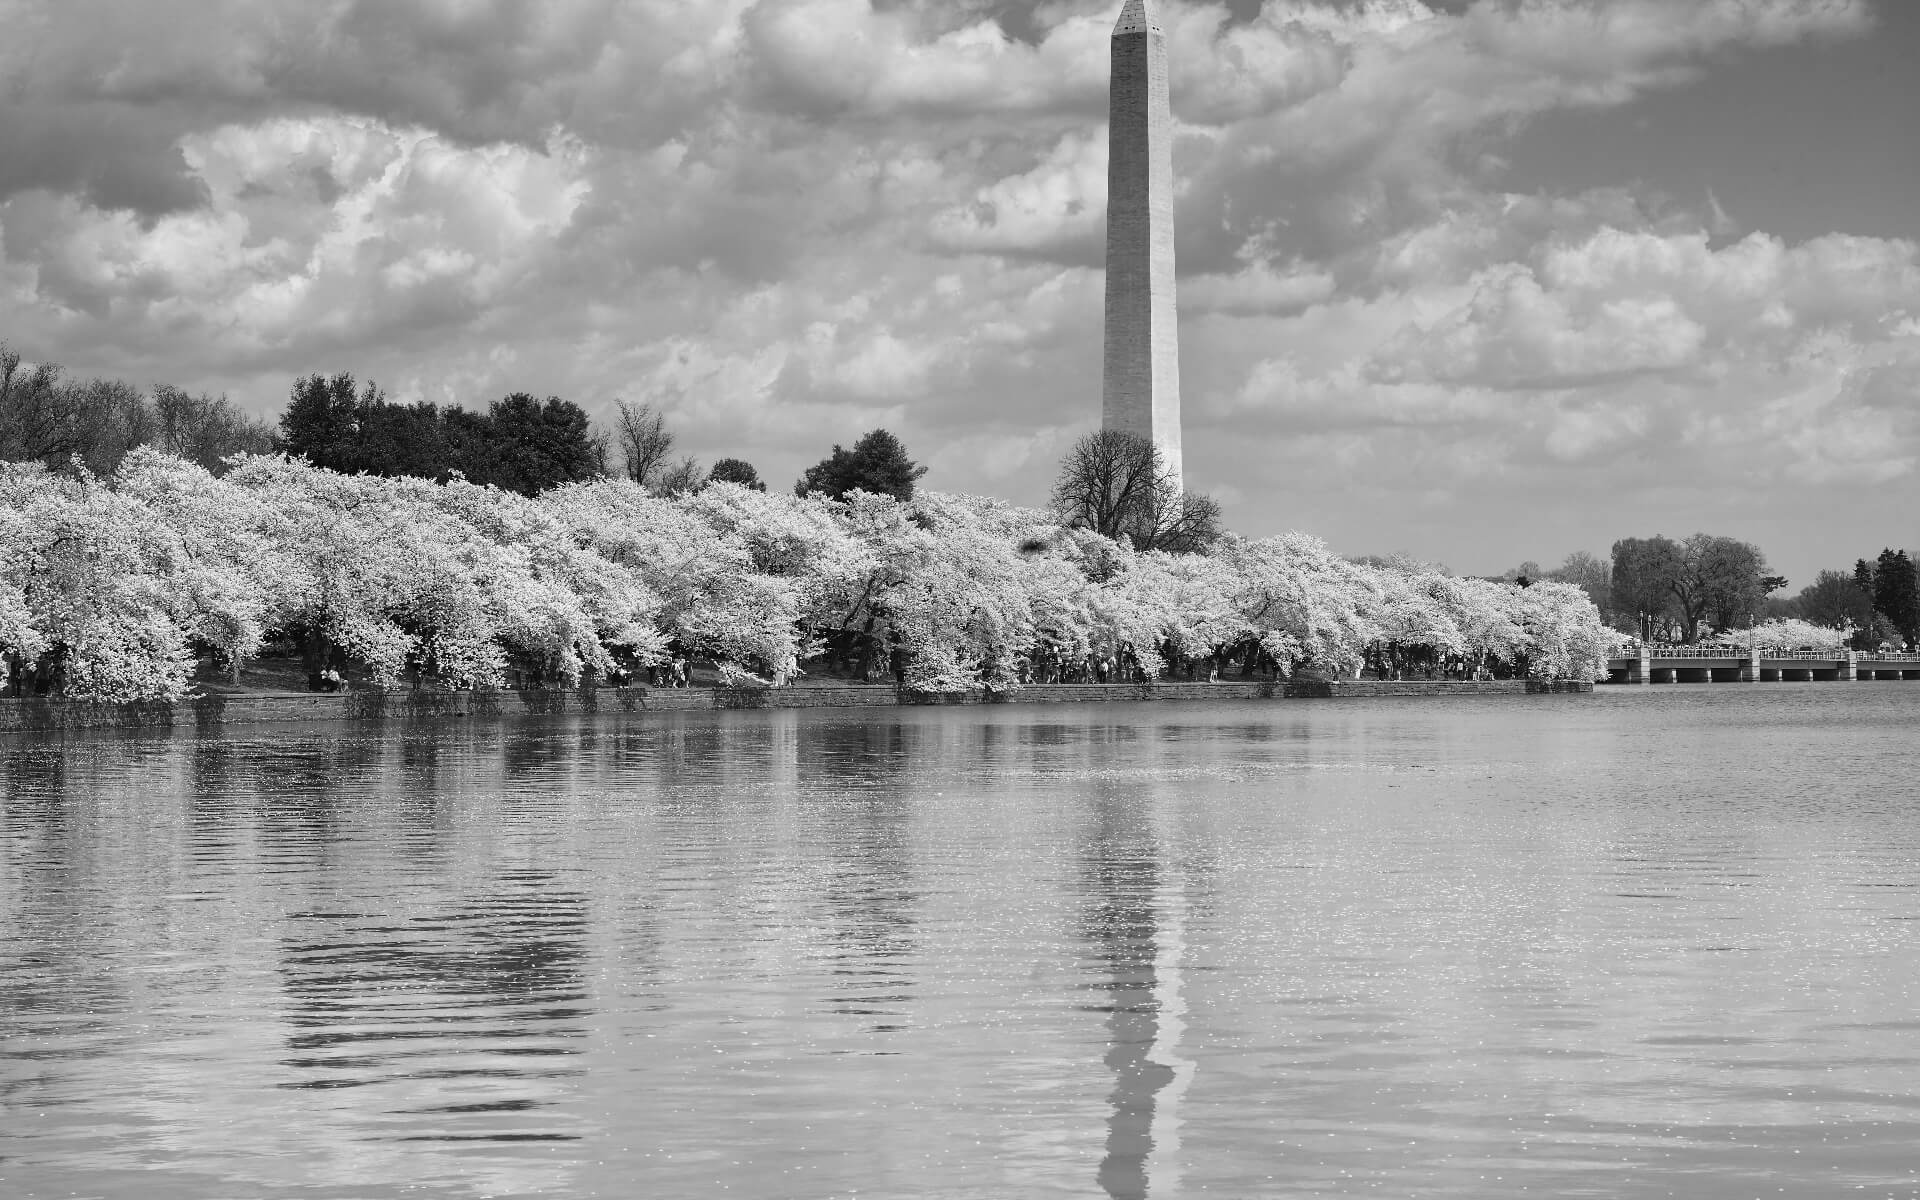 Washington Monument from the Tidal in Washington, D.C.